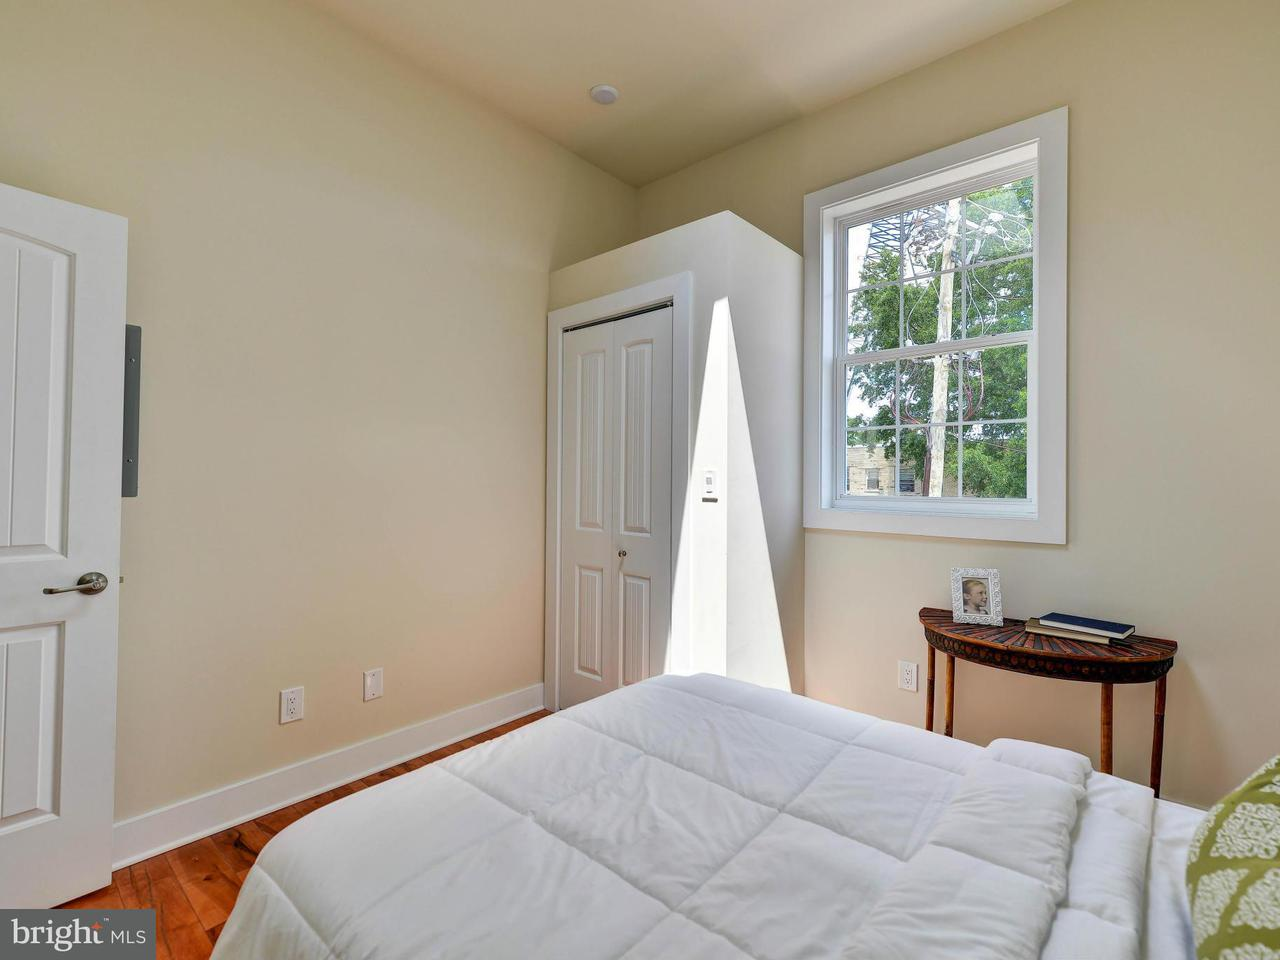 Additional photo for property listing at 5912 9TH ST NW #5 5912 9TH ST NW #5 Washington, Distretto Di Columbia 20011 Stati Uniti